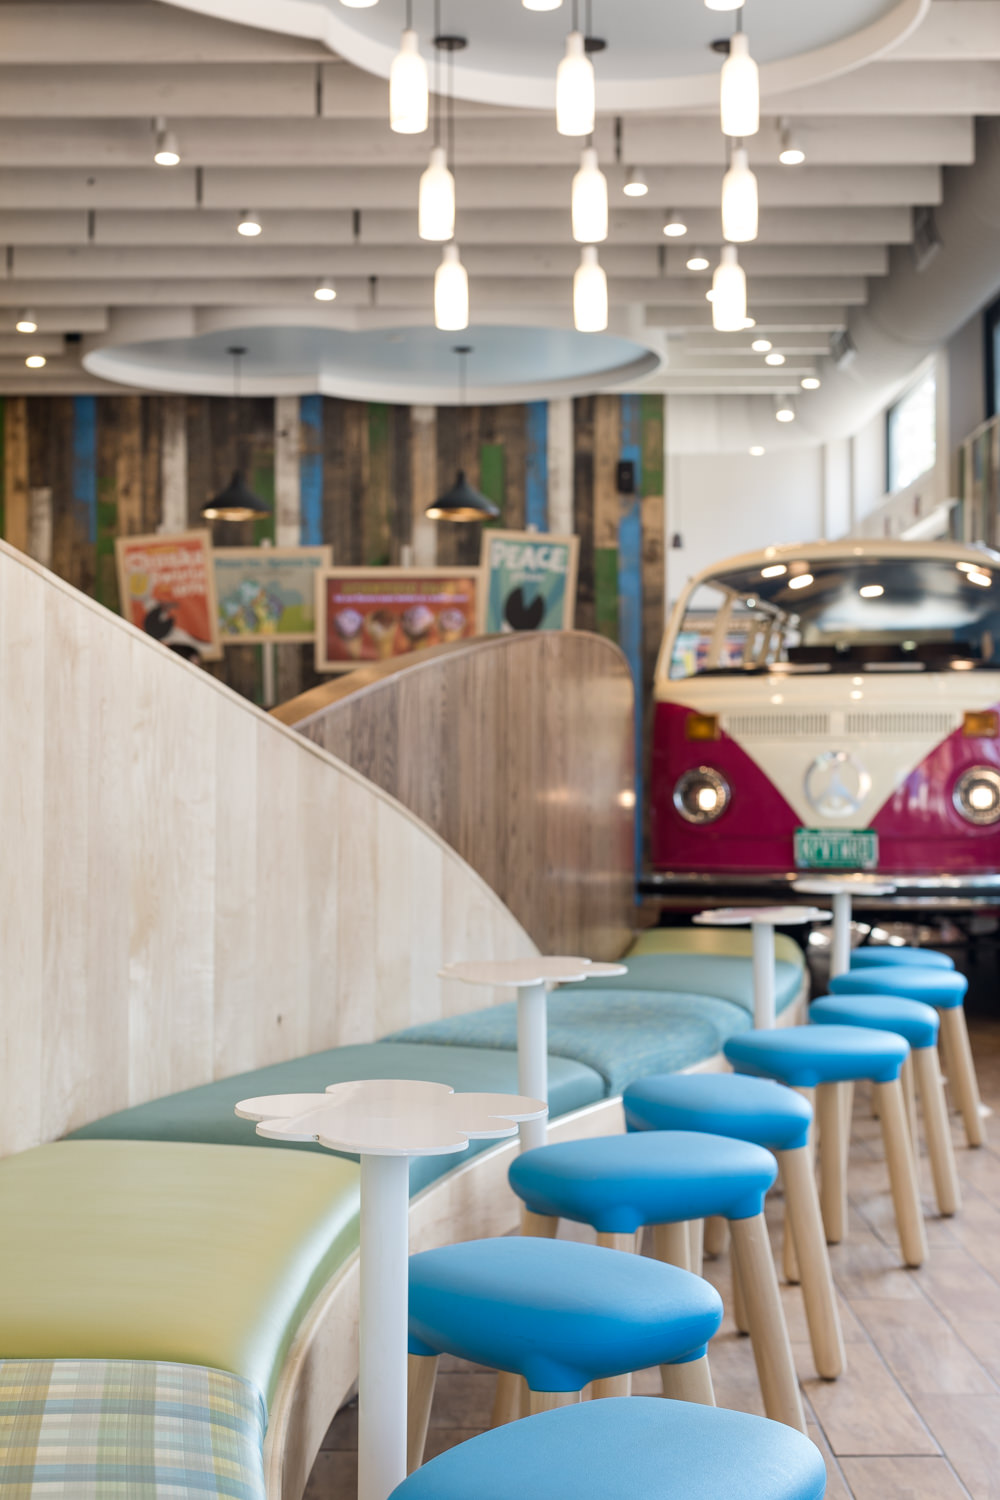 Photo of the colorful blue stools and green benches in the 2017 Ben & Jerry's scoop shop renovation on Church Street in Burlington Vermont by architecture photographer Stina Booth